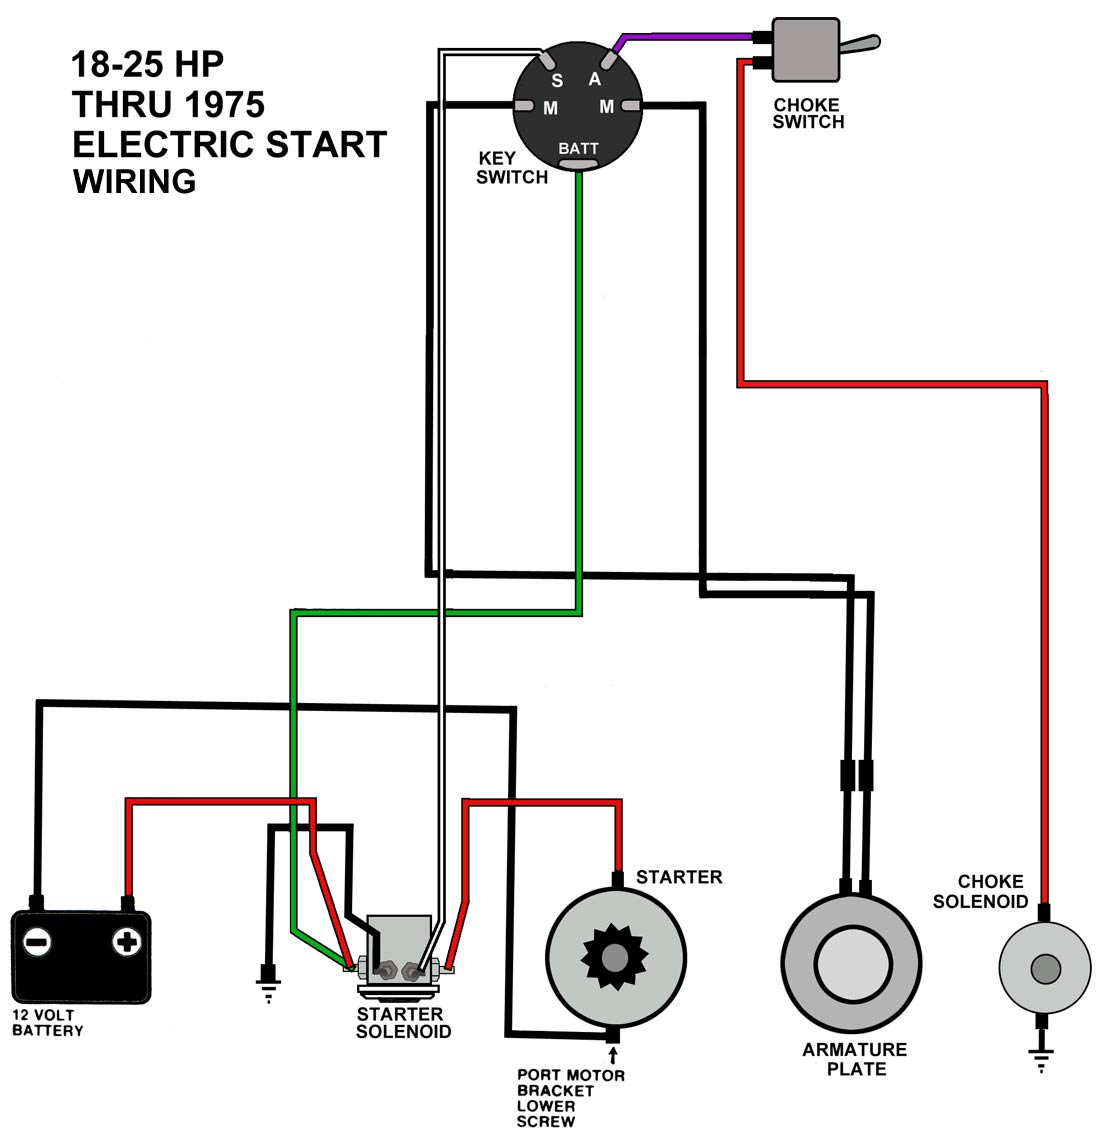 Evinrude 15 Hp Electric Start Wiring Diagram | Wiring Liry on 3 position ignition switch diagram, 3 pole switch diagram, light switch outlet diagram, 3 position light switch diagram, 3 position toggle switch, ignition starter switch diagram, dpdt on-off-on switch diagram, 3 position switch operation, on off on toggle switch diagram, crankshaft position sensor wiring diagram, throttle position sensor wiring diagram, 2 position selector switch diagram, 2 pole switch diagram, 6 prong toggle switch diagram, jeep cj headlight switch diagram, 3-way toggle switch diagram, 6 pin toggle switch diagram, 3 three-way switch diagram, 3 position switch parts, 3 position wall switch,